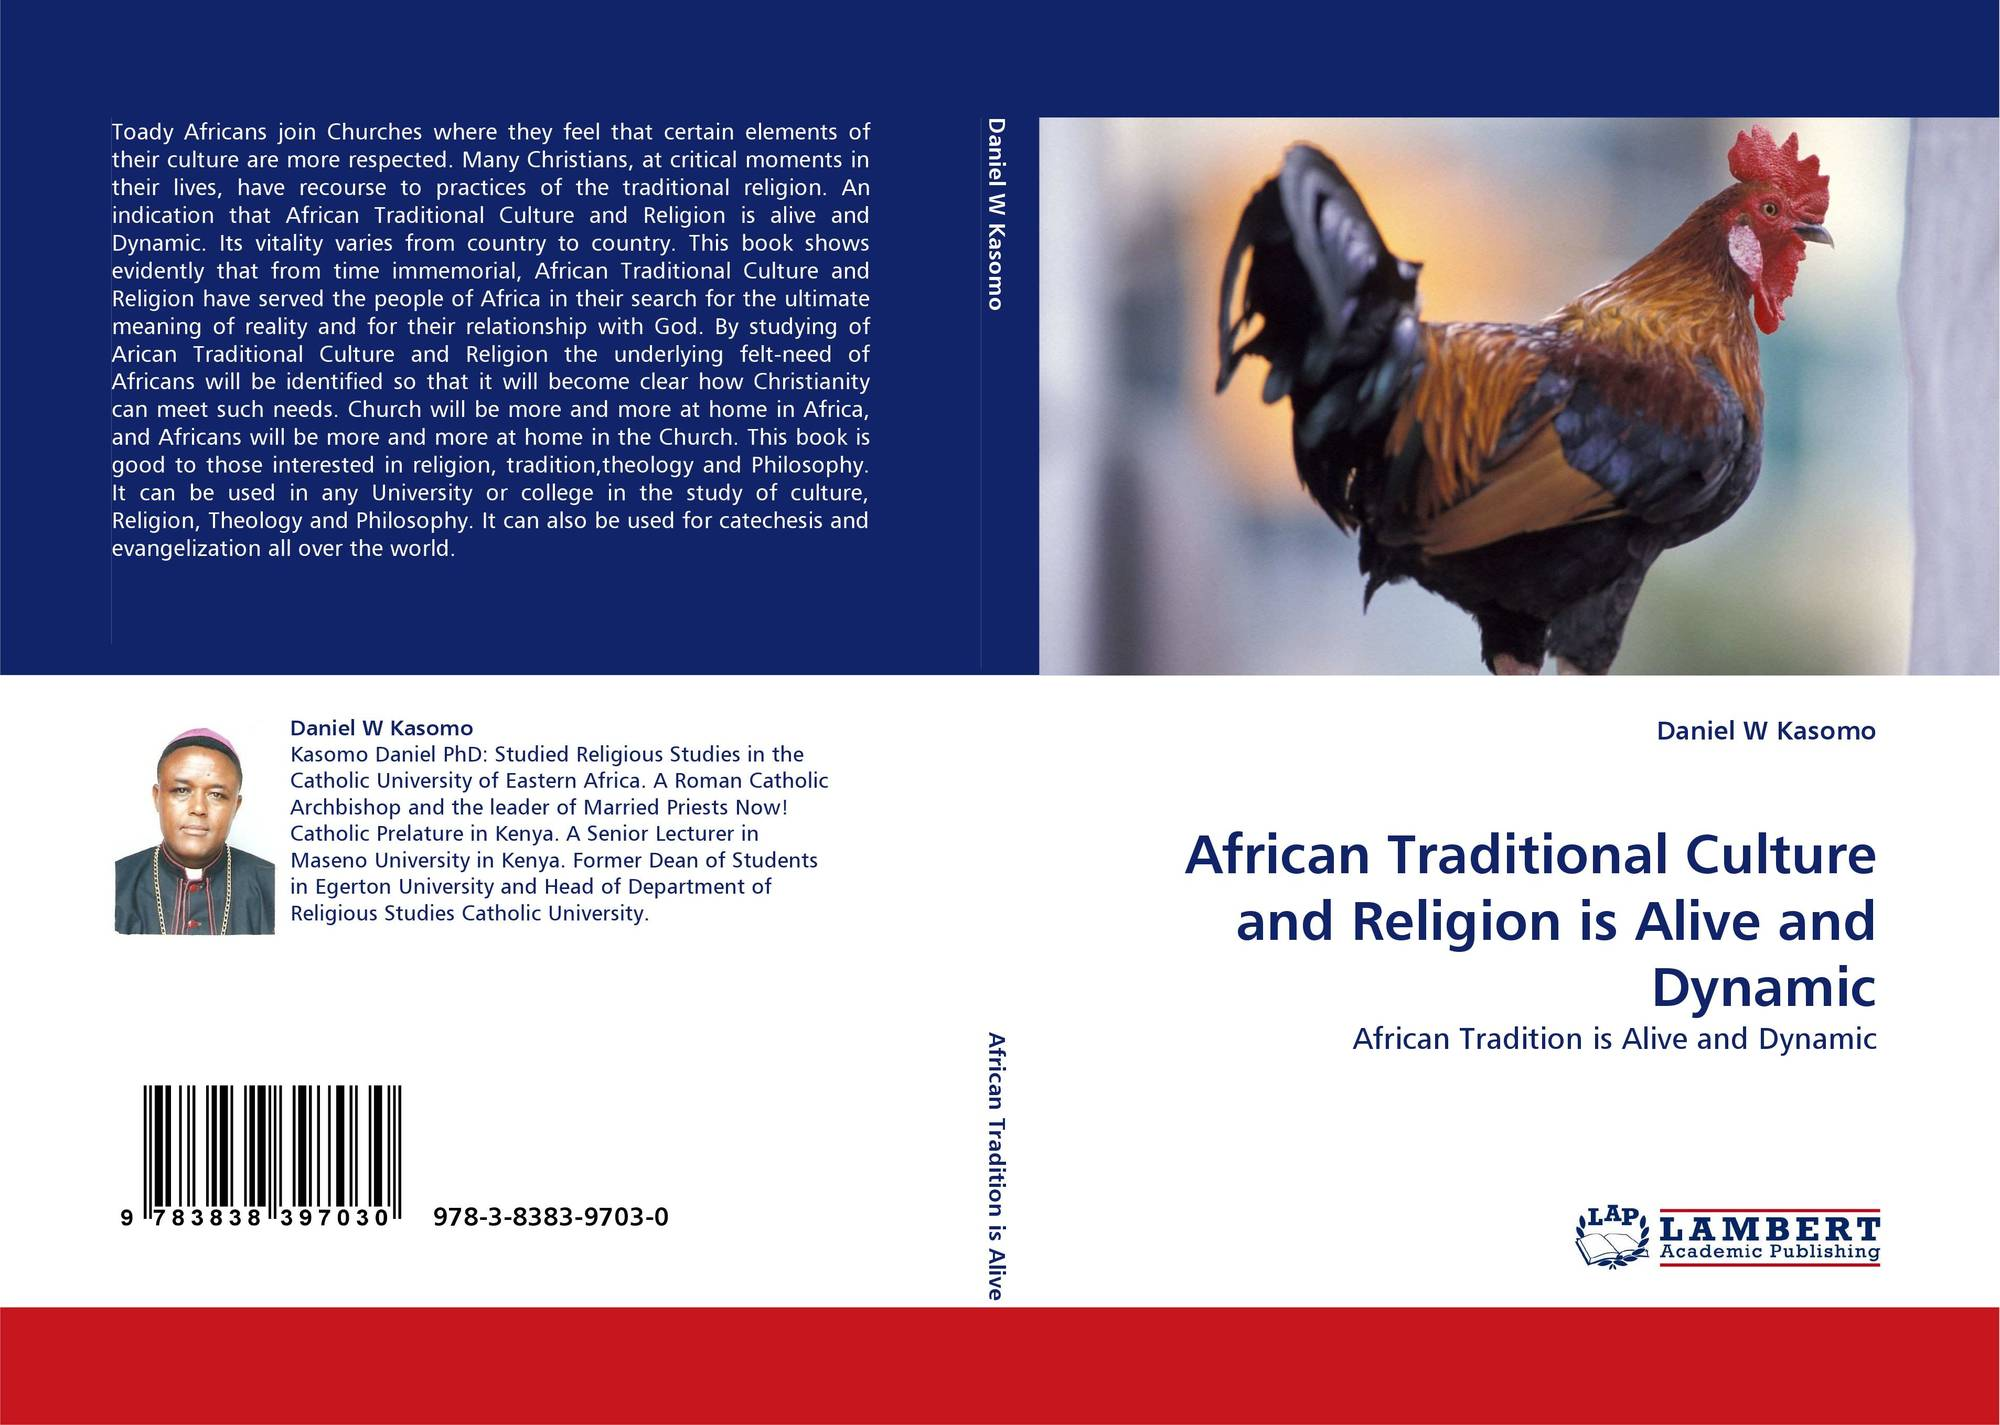 an analysis of the traditional west african religion practices and preferences